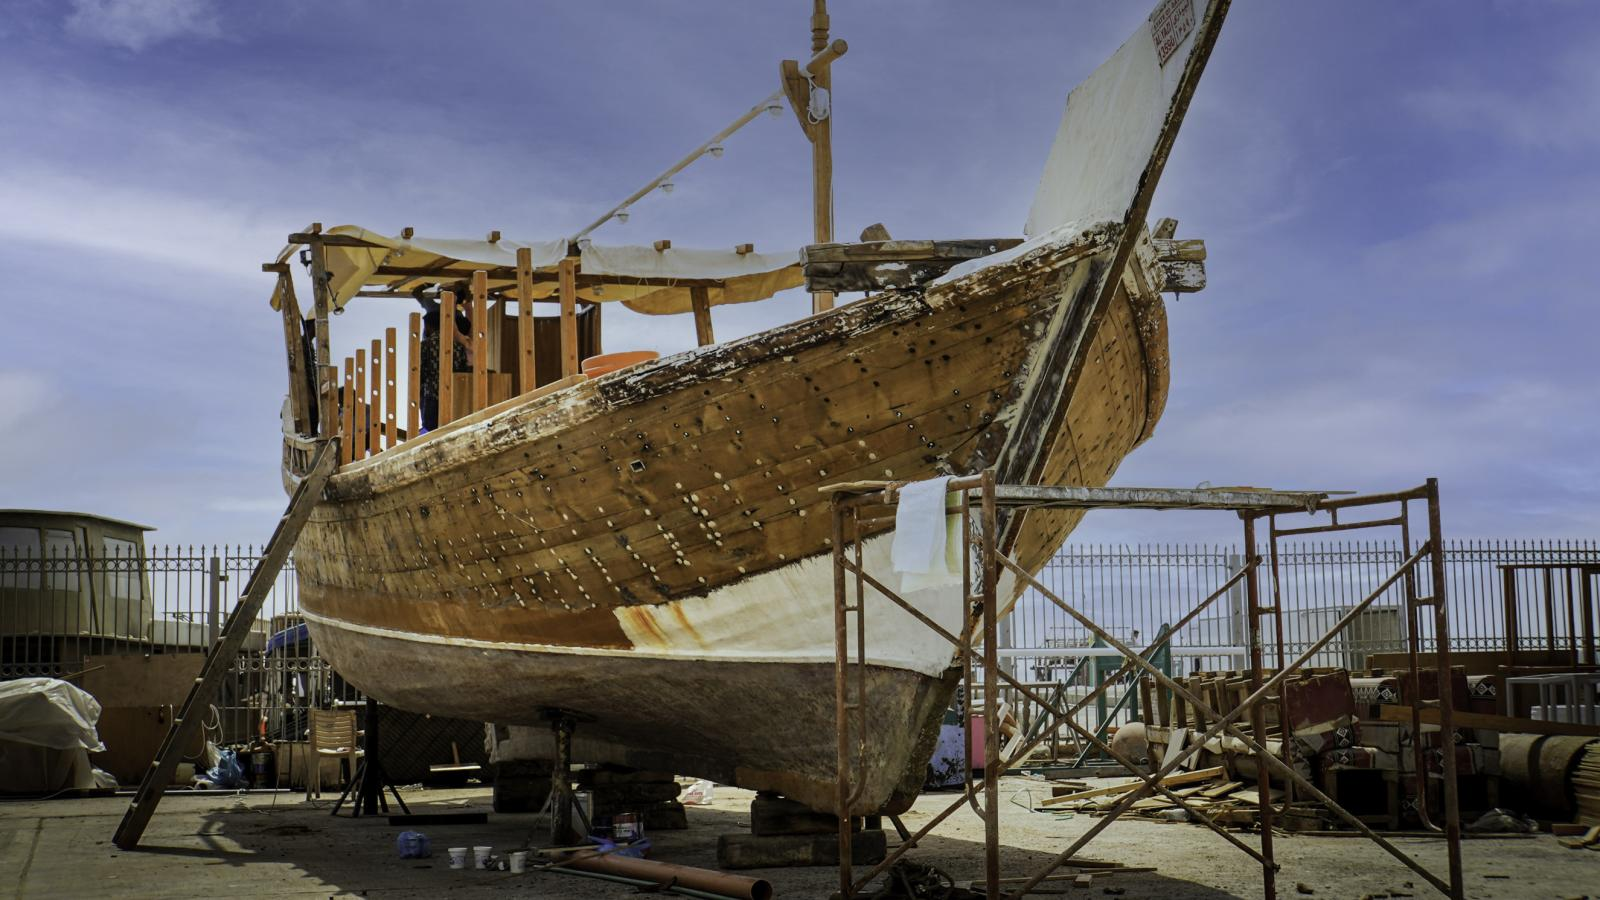 QNTC initiated a large-scale project to refurbish a fleet of over 40 dhow boats